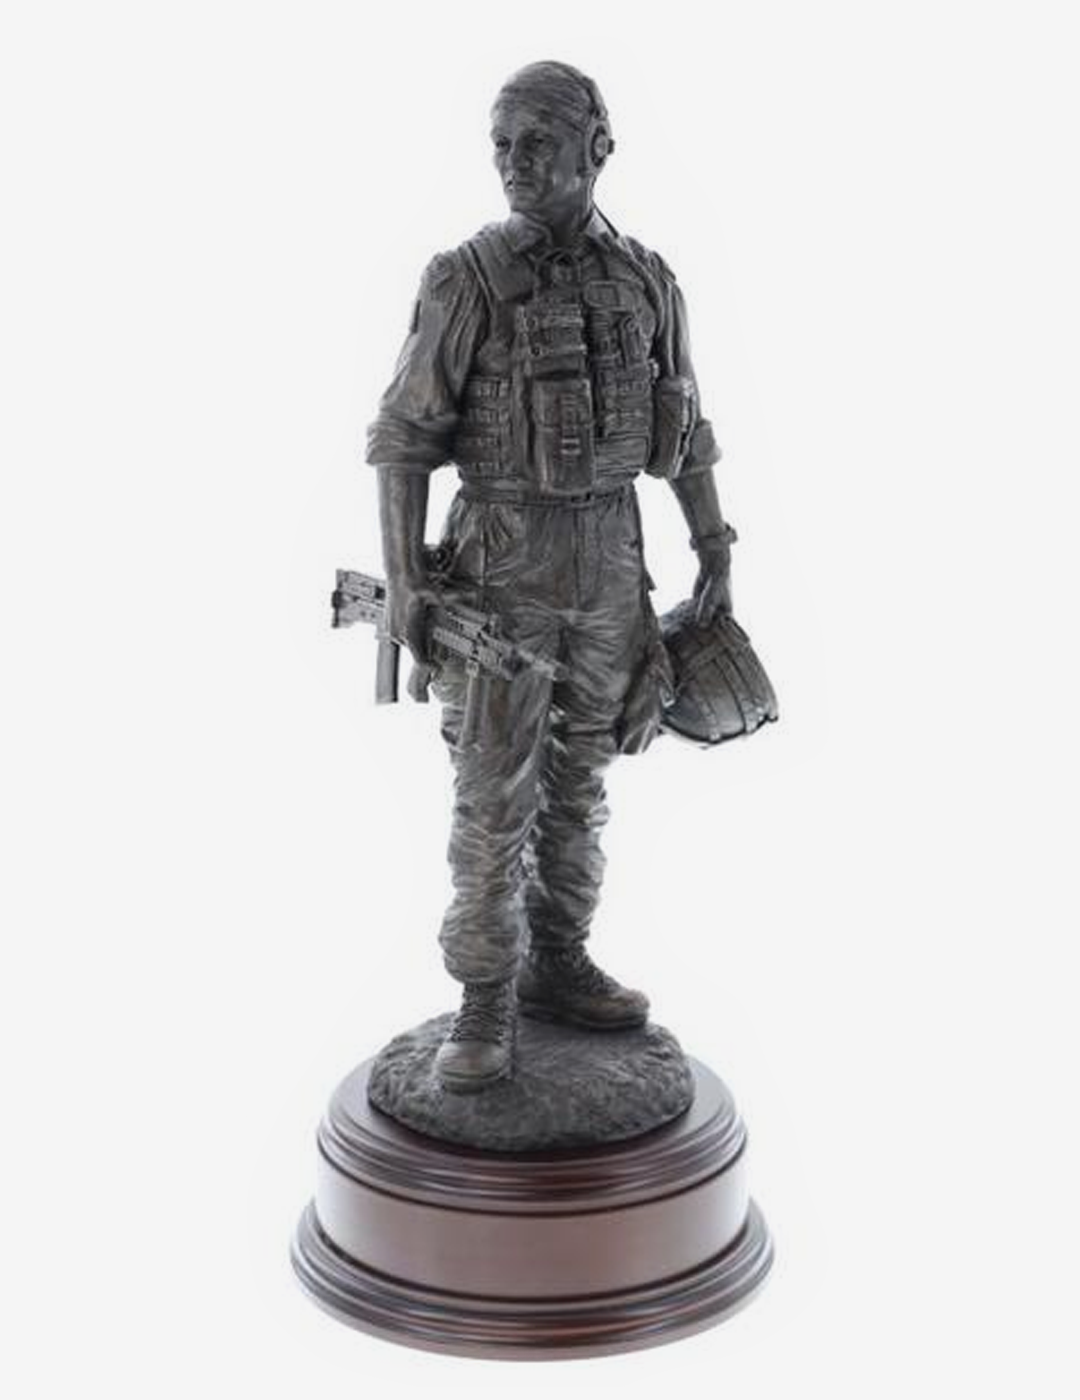 Royal Marine Dewerstone - Bronze